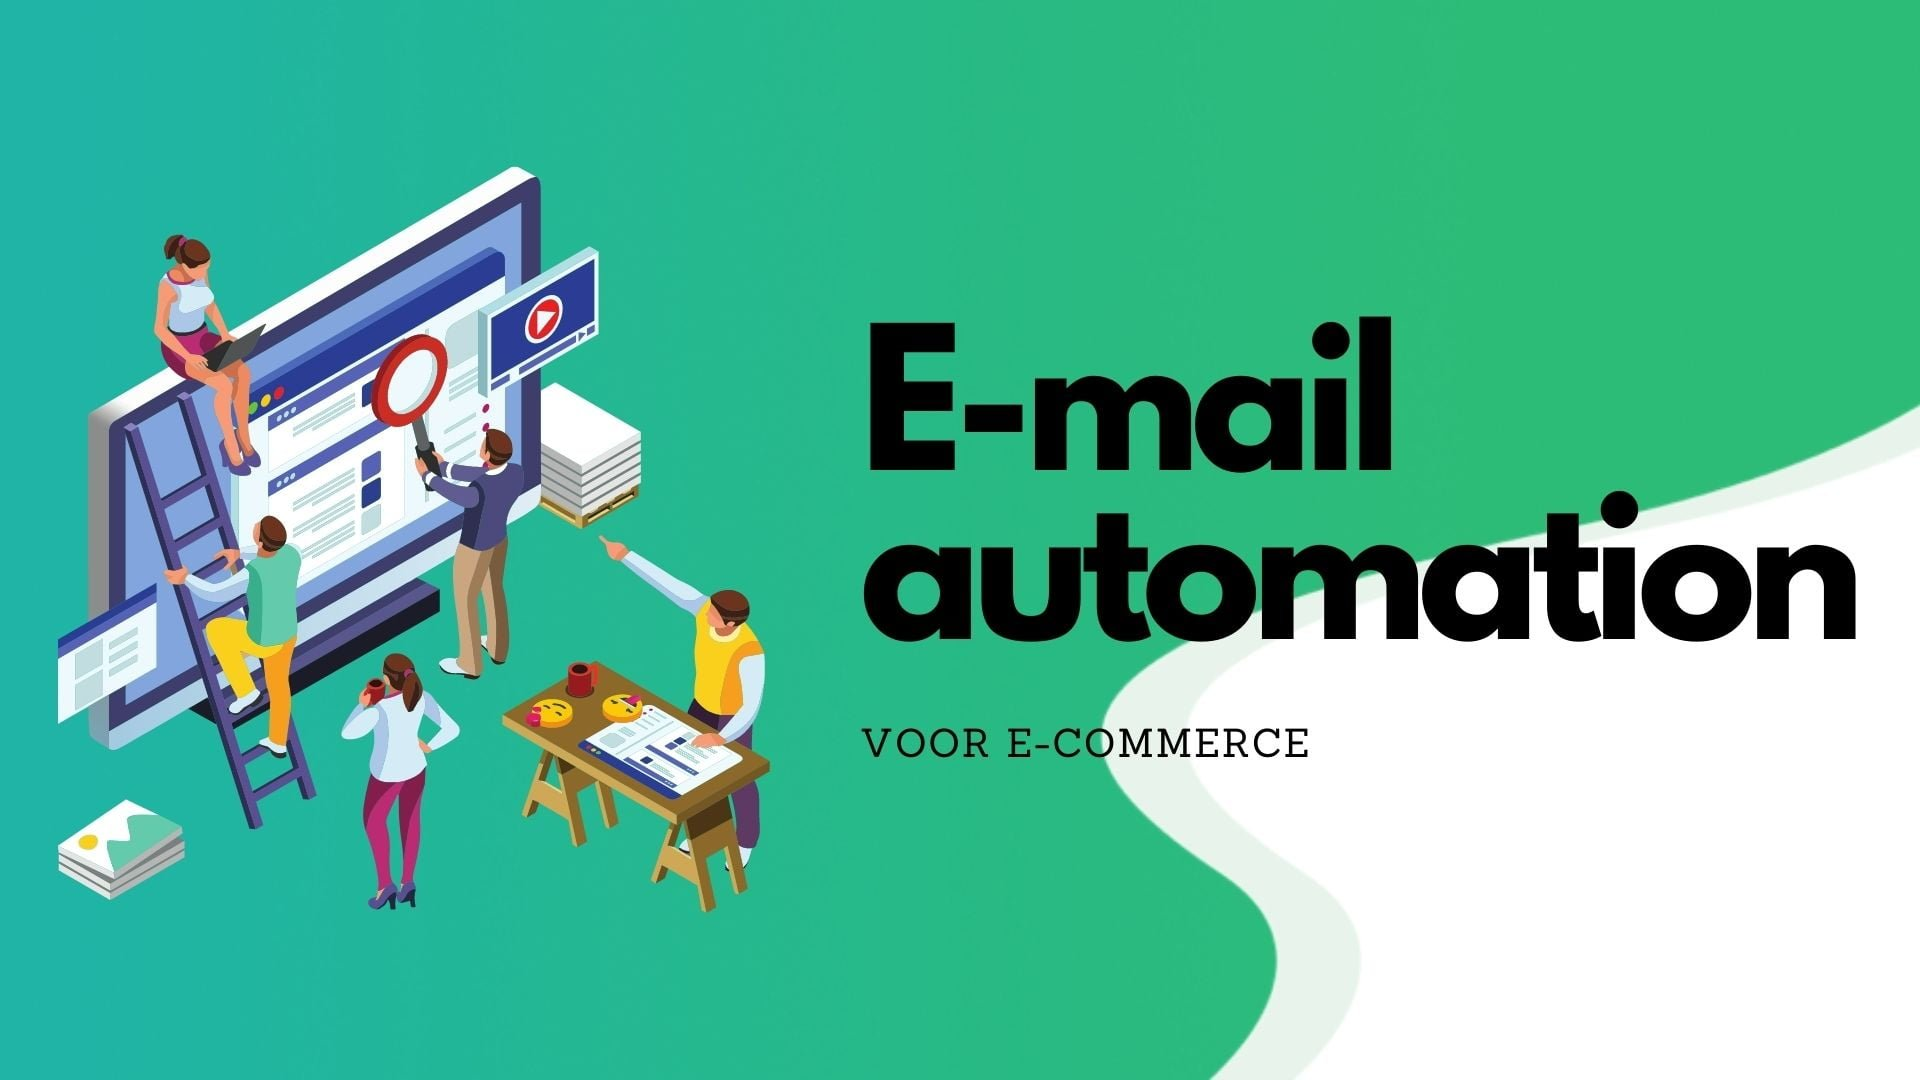 E-mail automation voor E-commerce